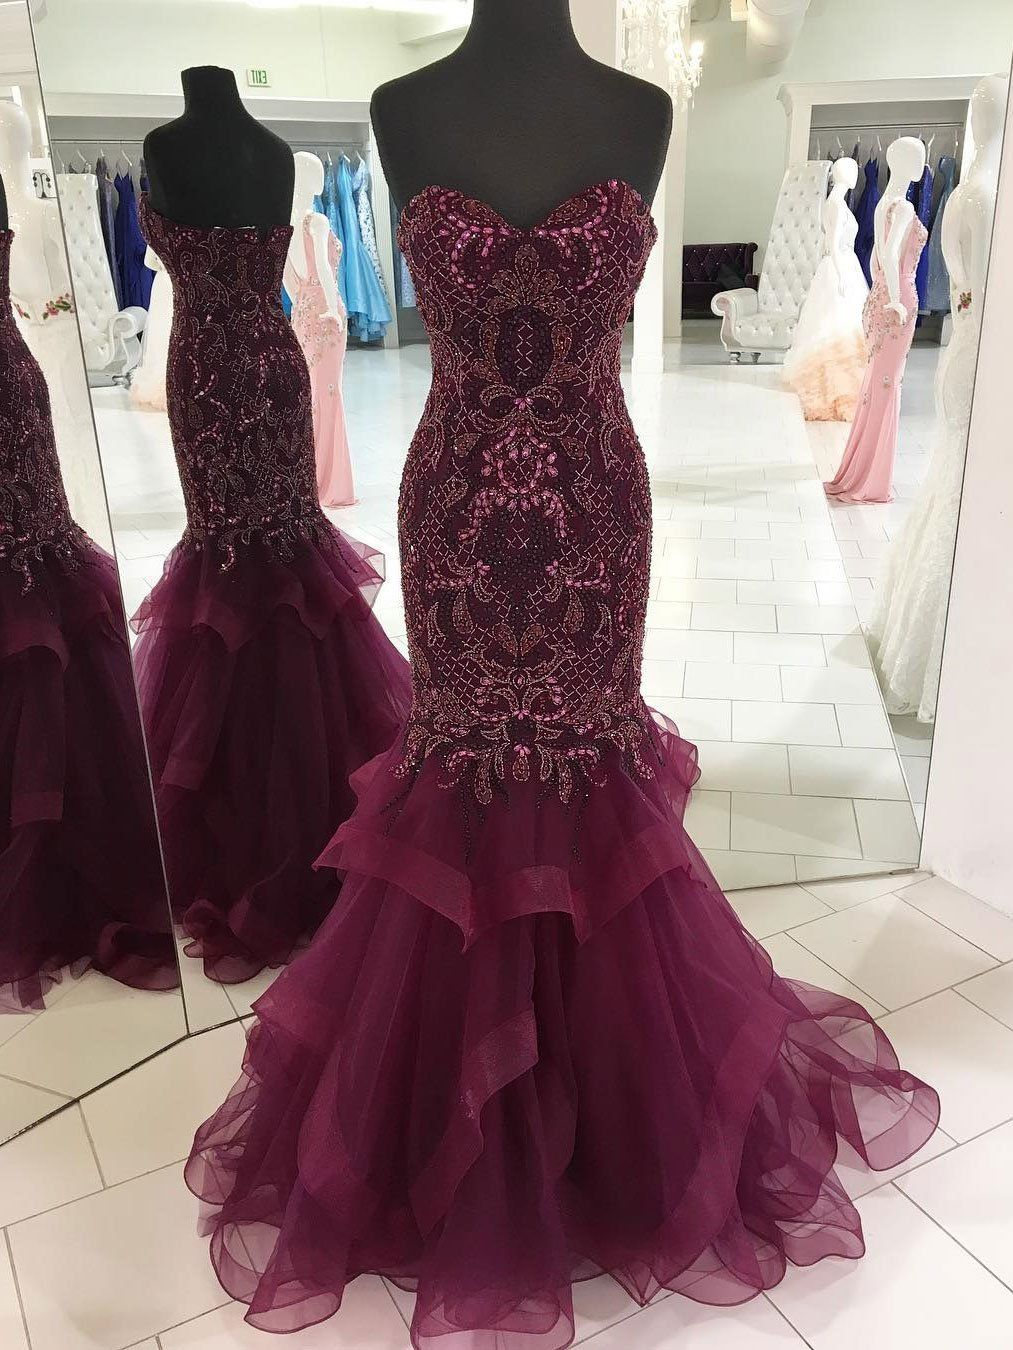 7c17d776179 Grape Tulle with Beaded Shine Mermaid Prom Dresses